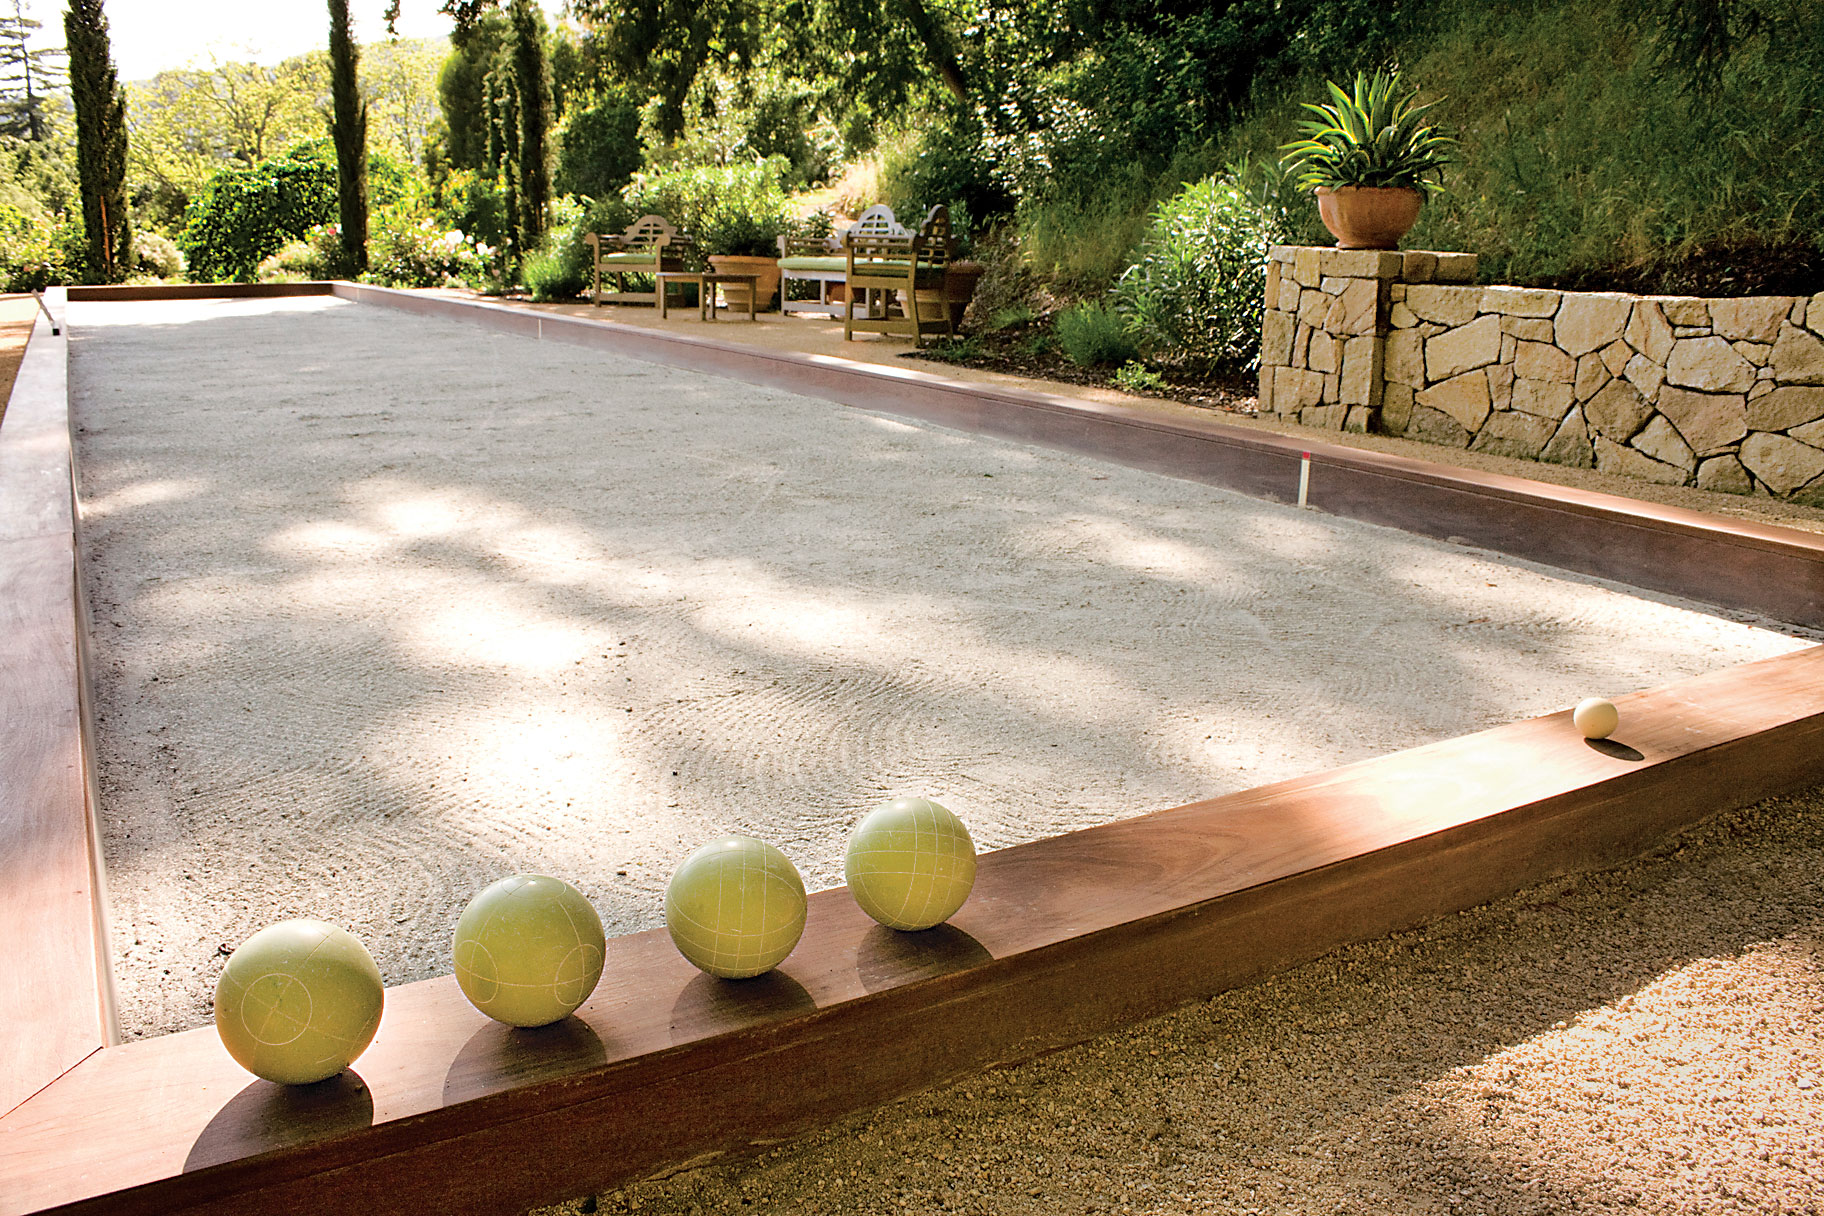 Bocce court in Ross, California